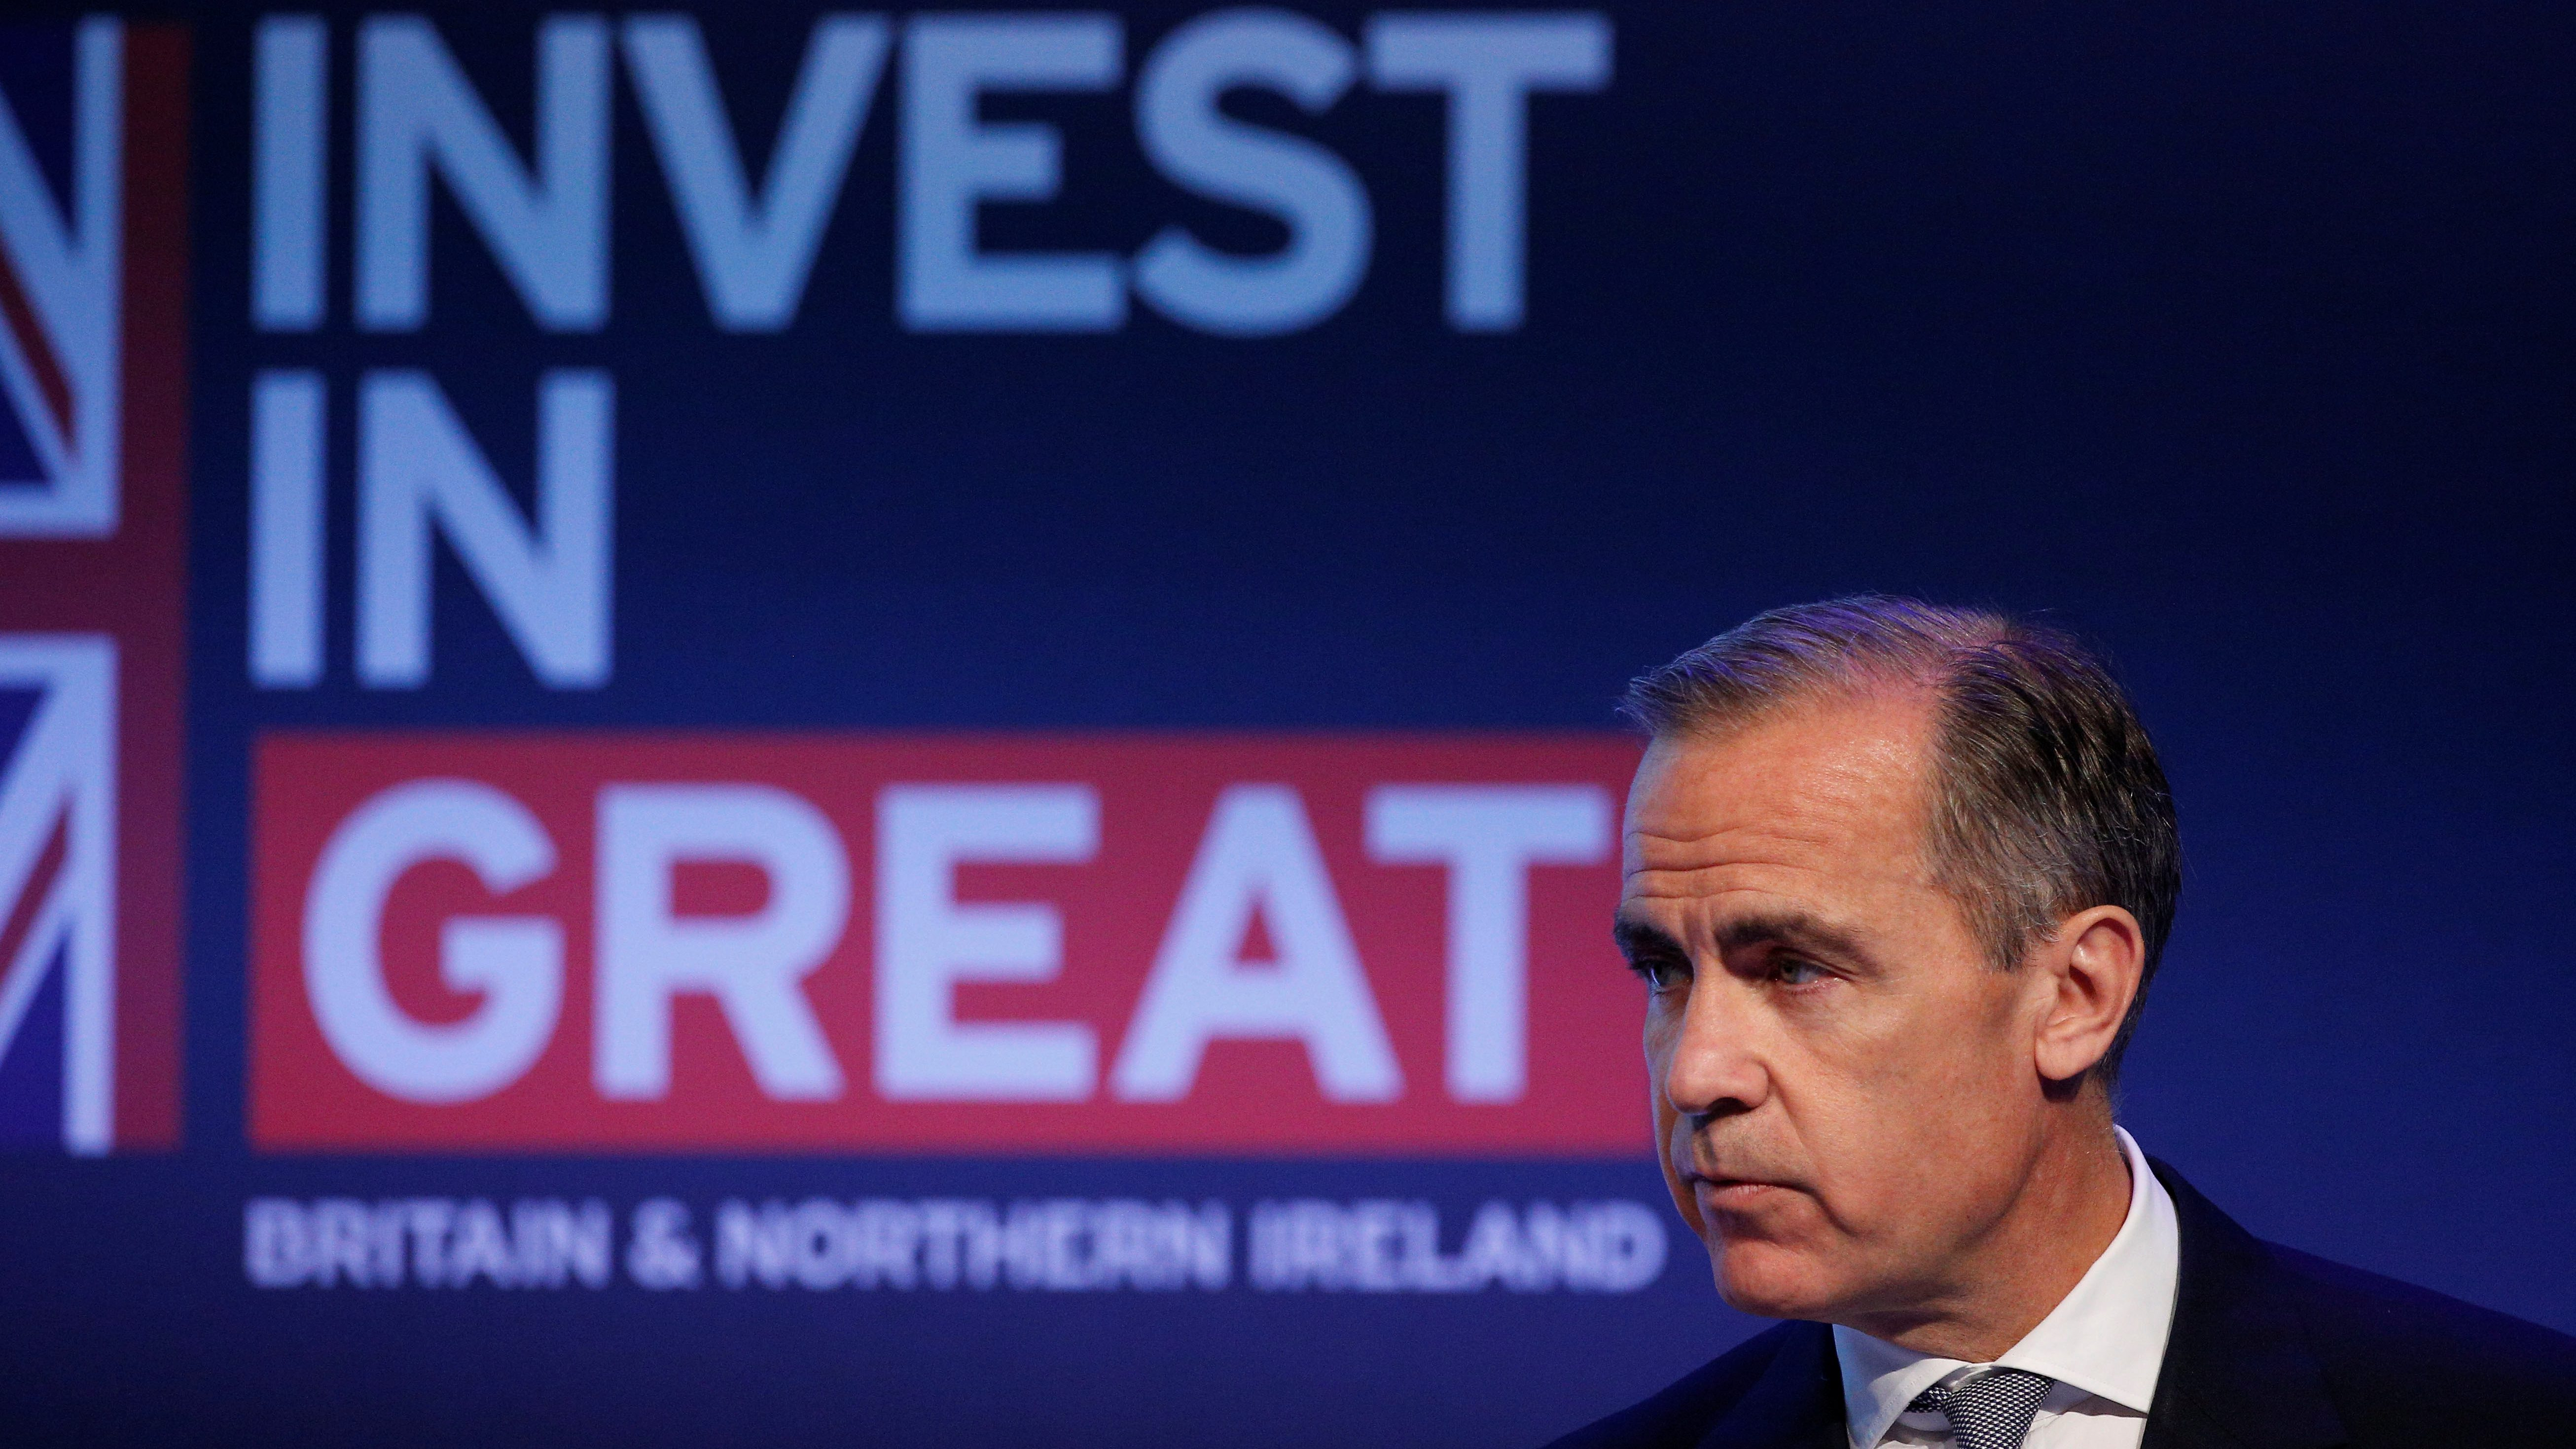 Governor of the Bank of England Mark Carney delivers a speech at the International Fintech Conference in London, Britain April 12, 2017.